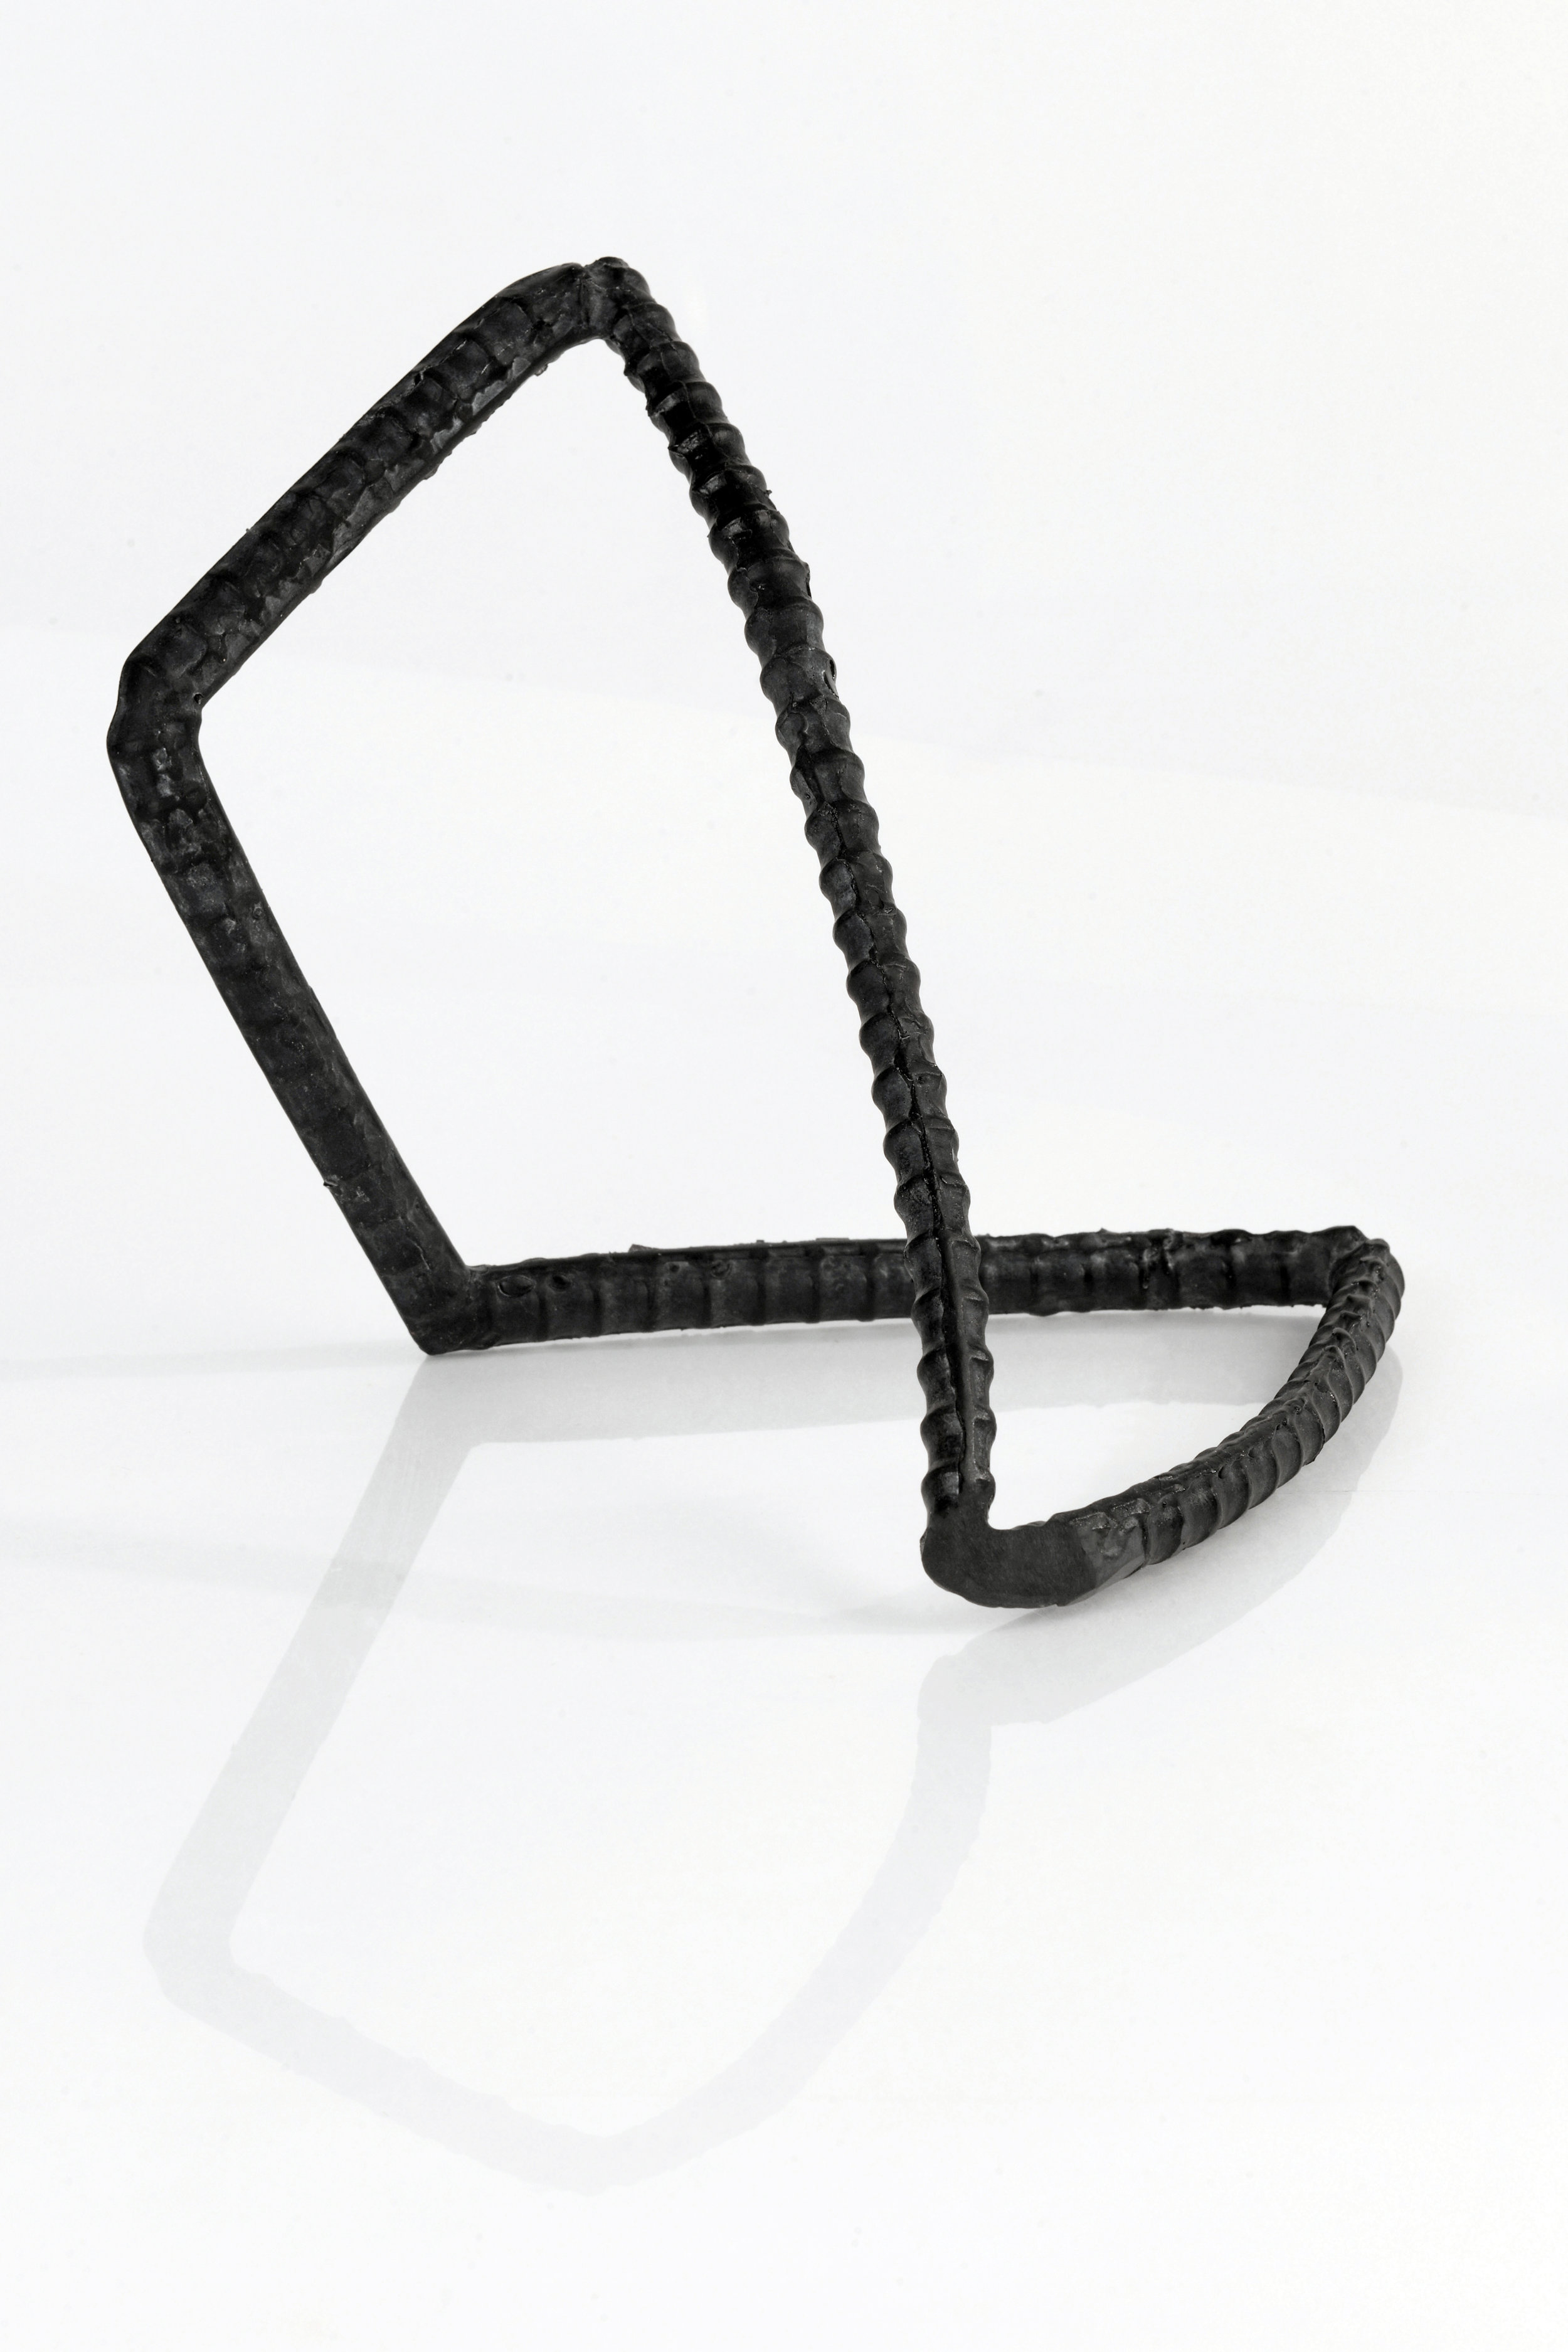 "Untitled , cast lead crystal (black glass), 10"" x 10"" x 12""  Collection of the Ernsting Stiftung Museum"